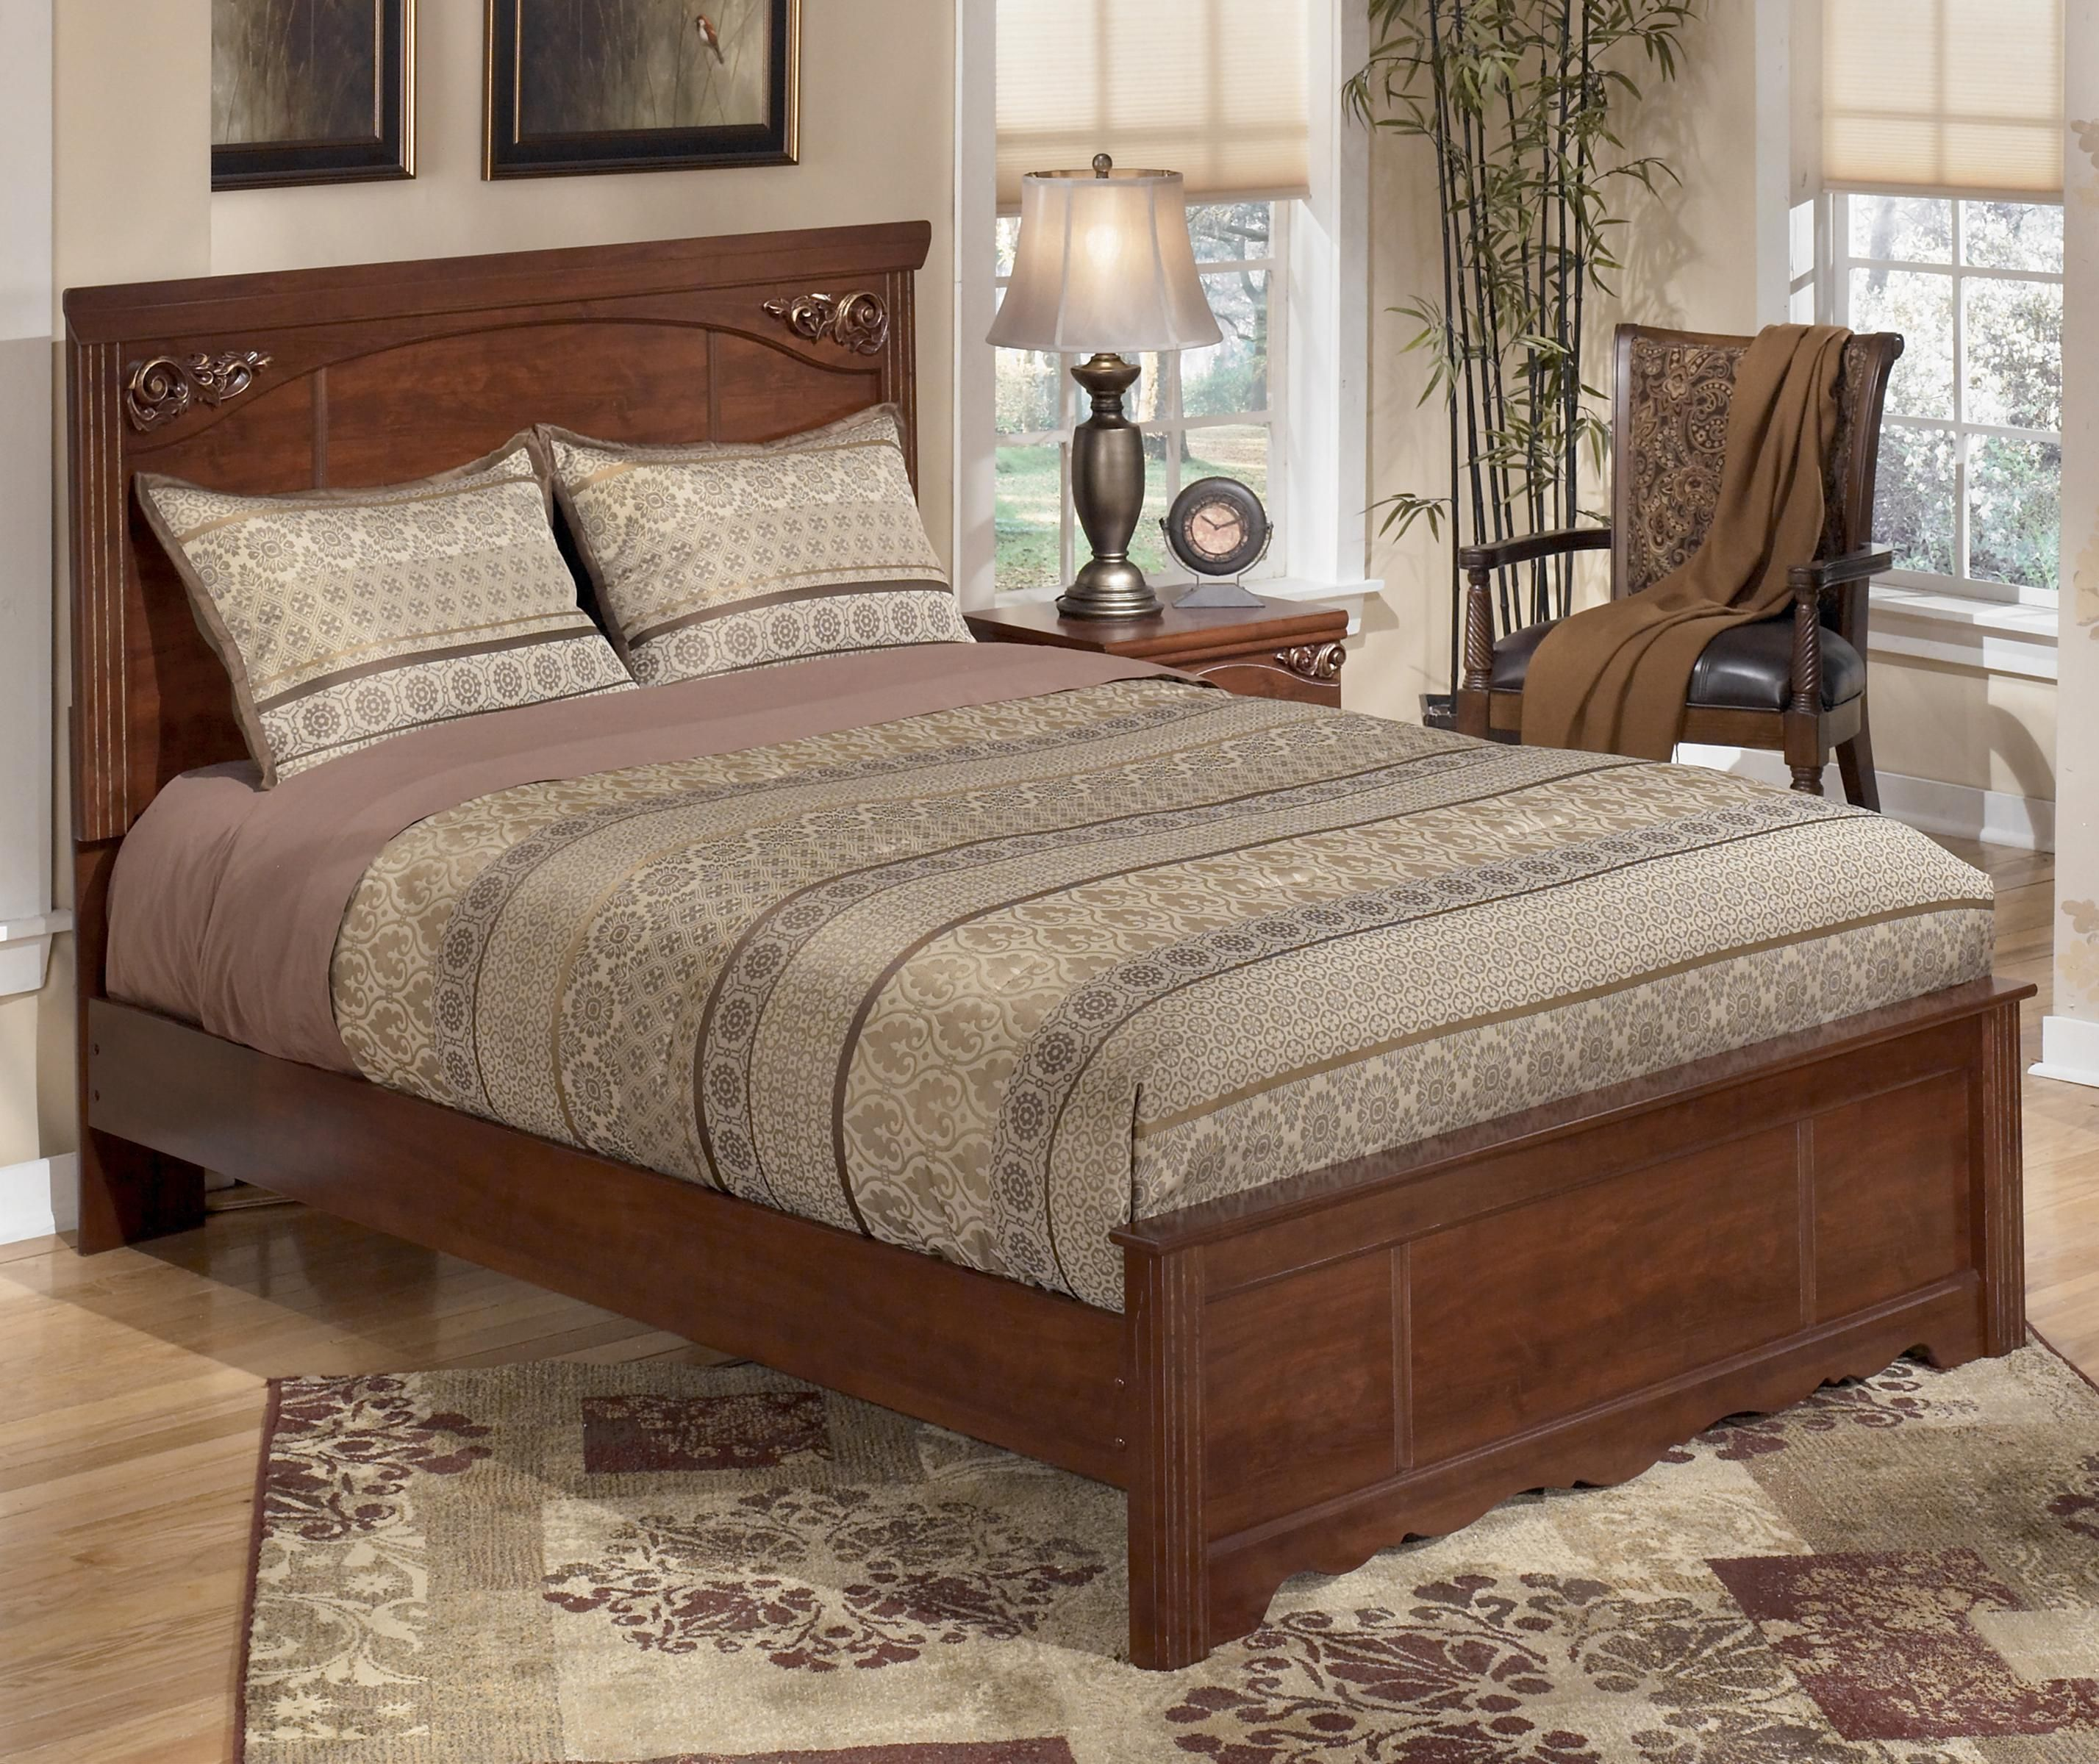 Treasureland Queen Platform Bed by Signature Design by